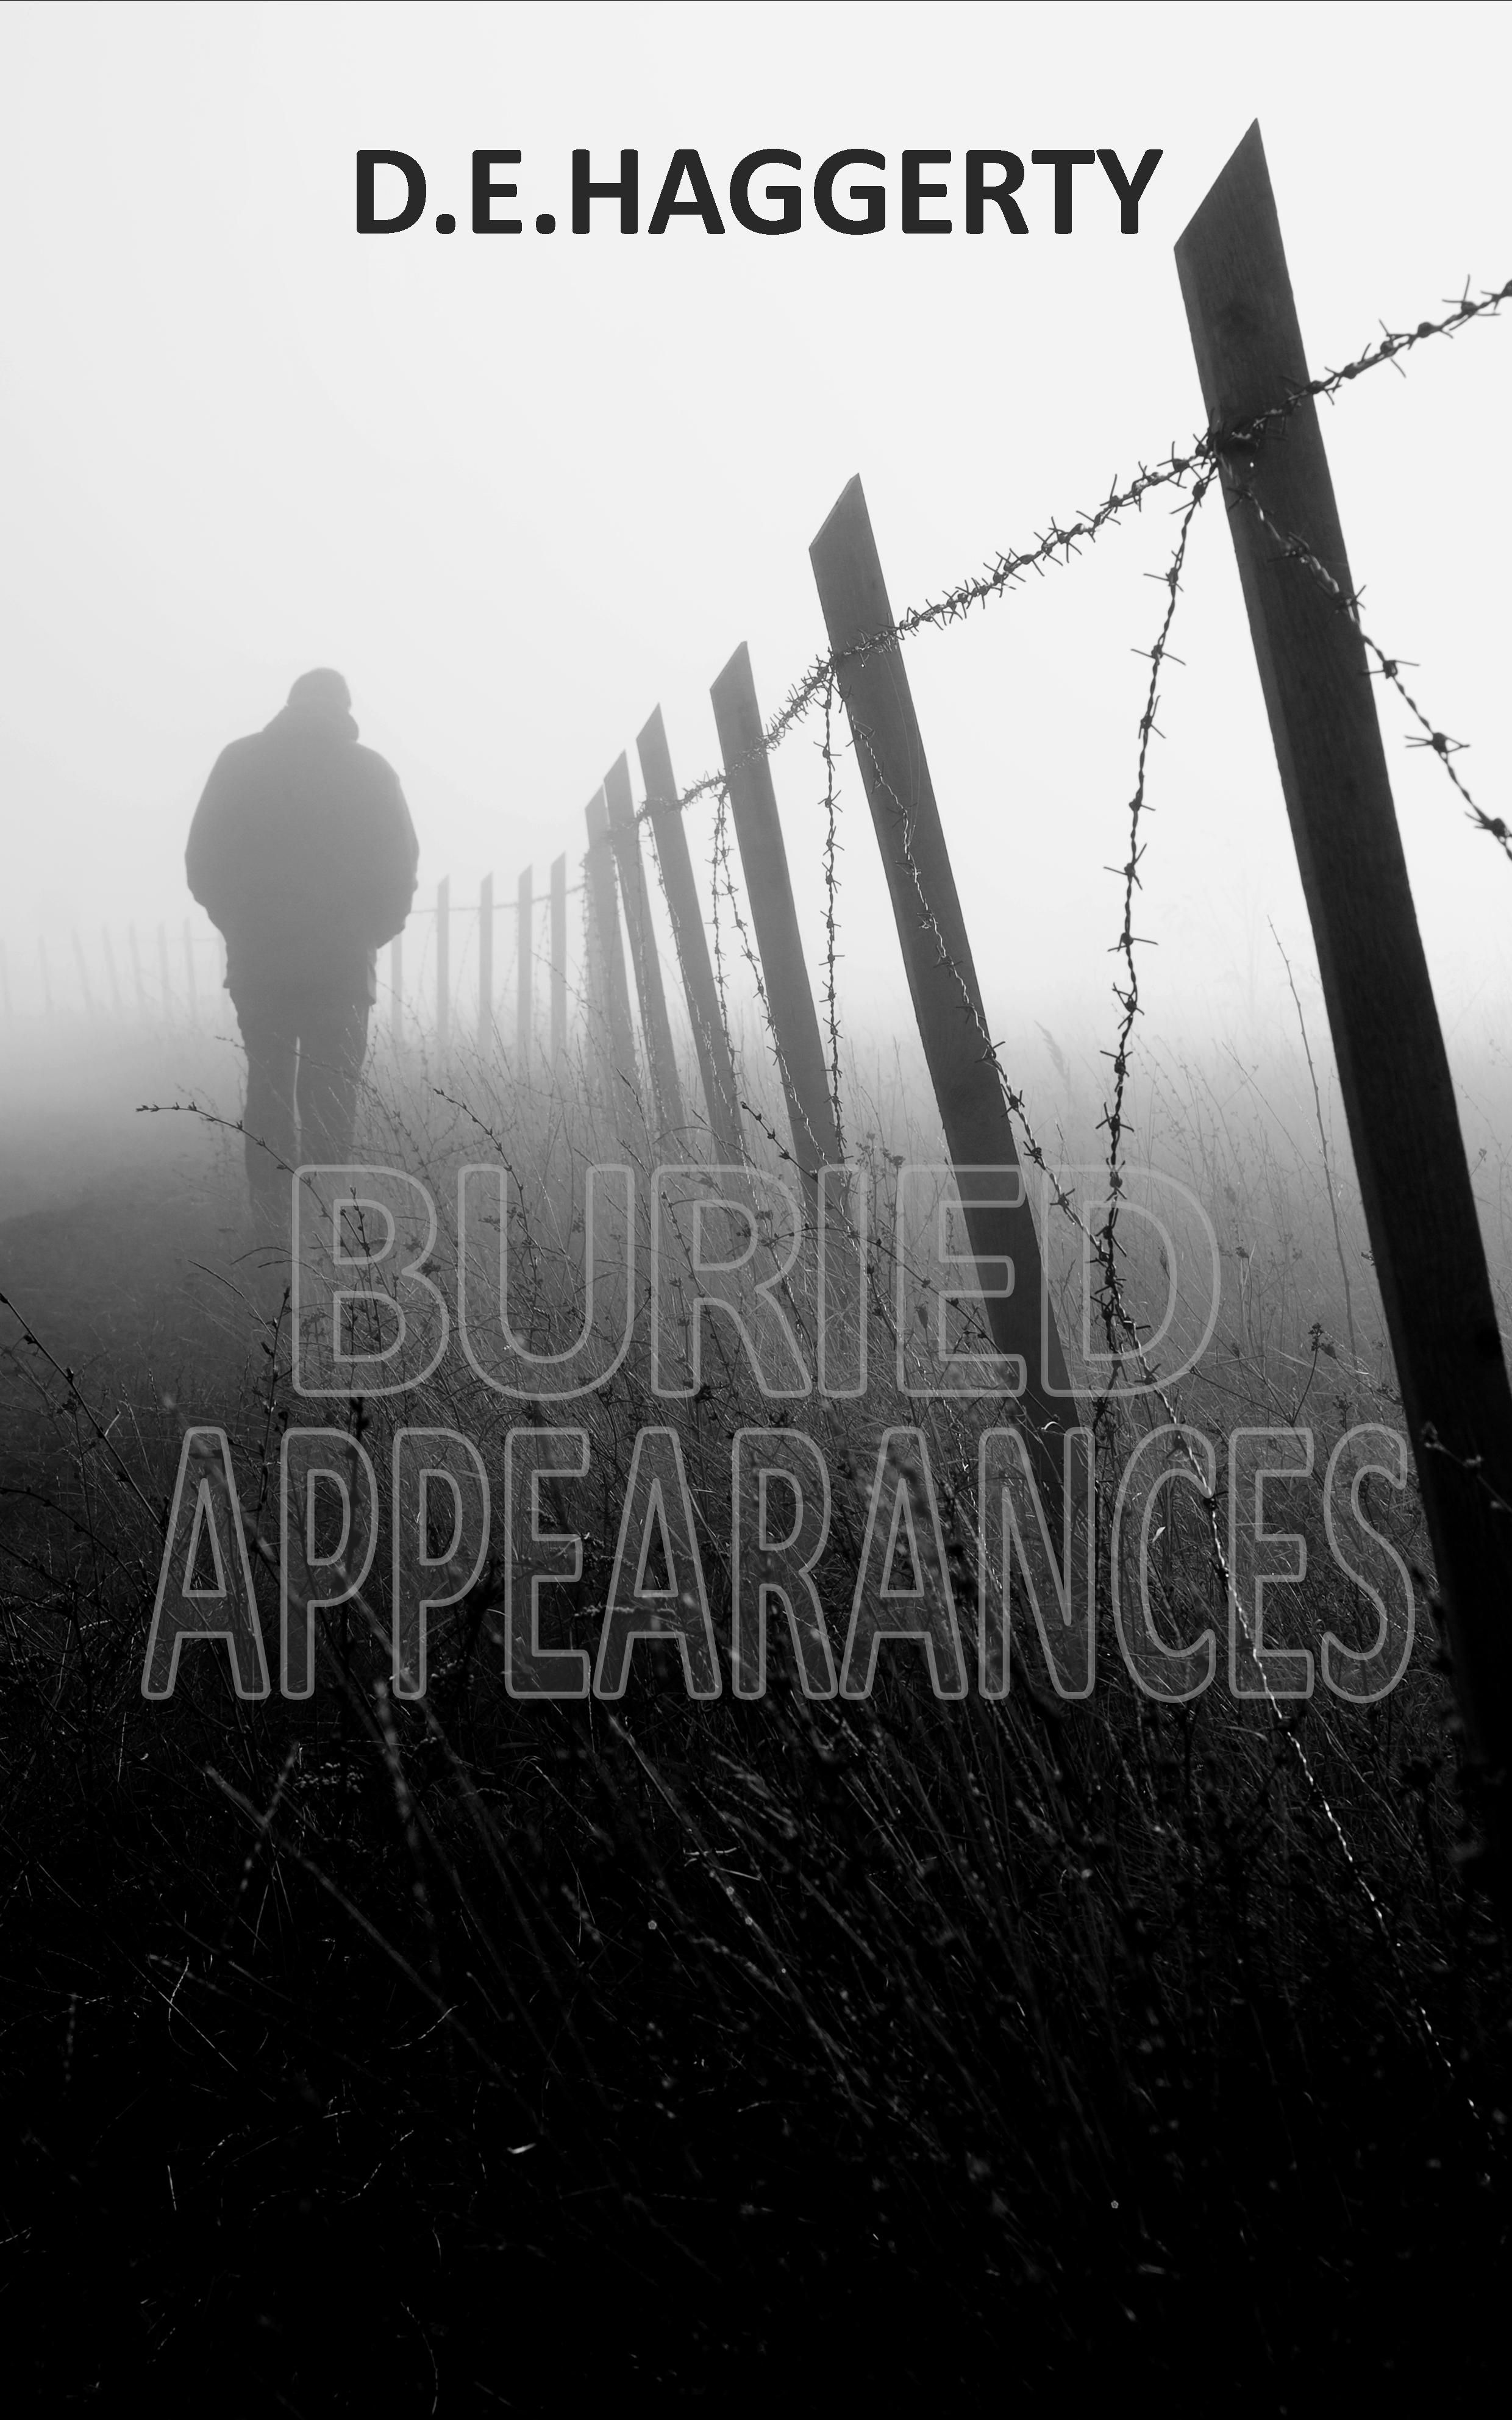 My 2nd self-published book: Buried Appearances